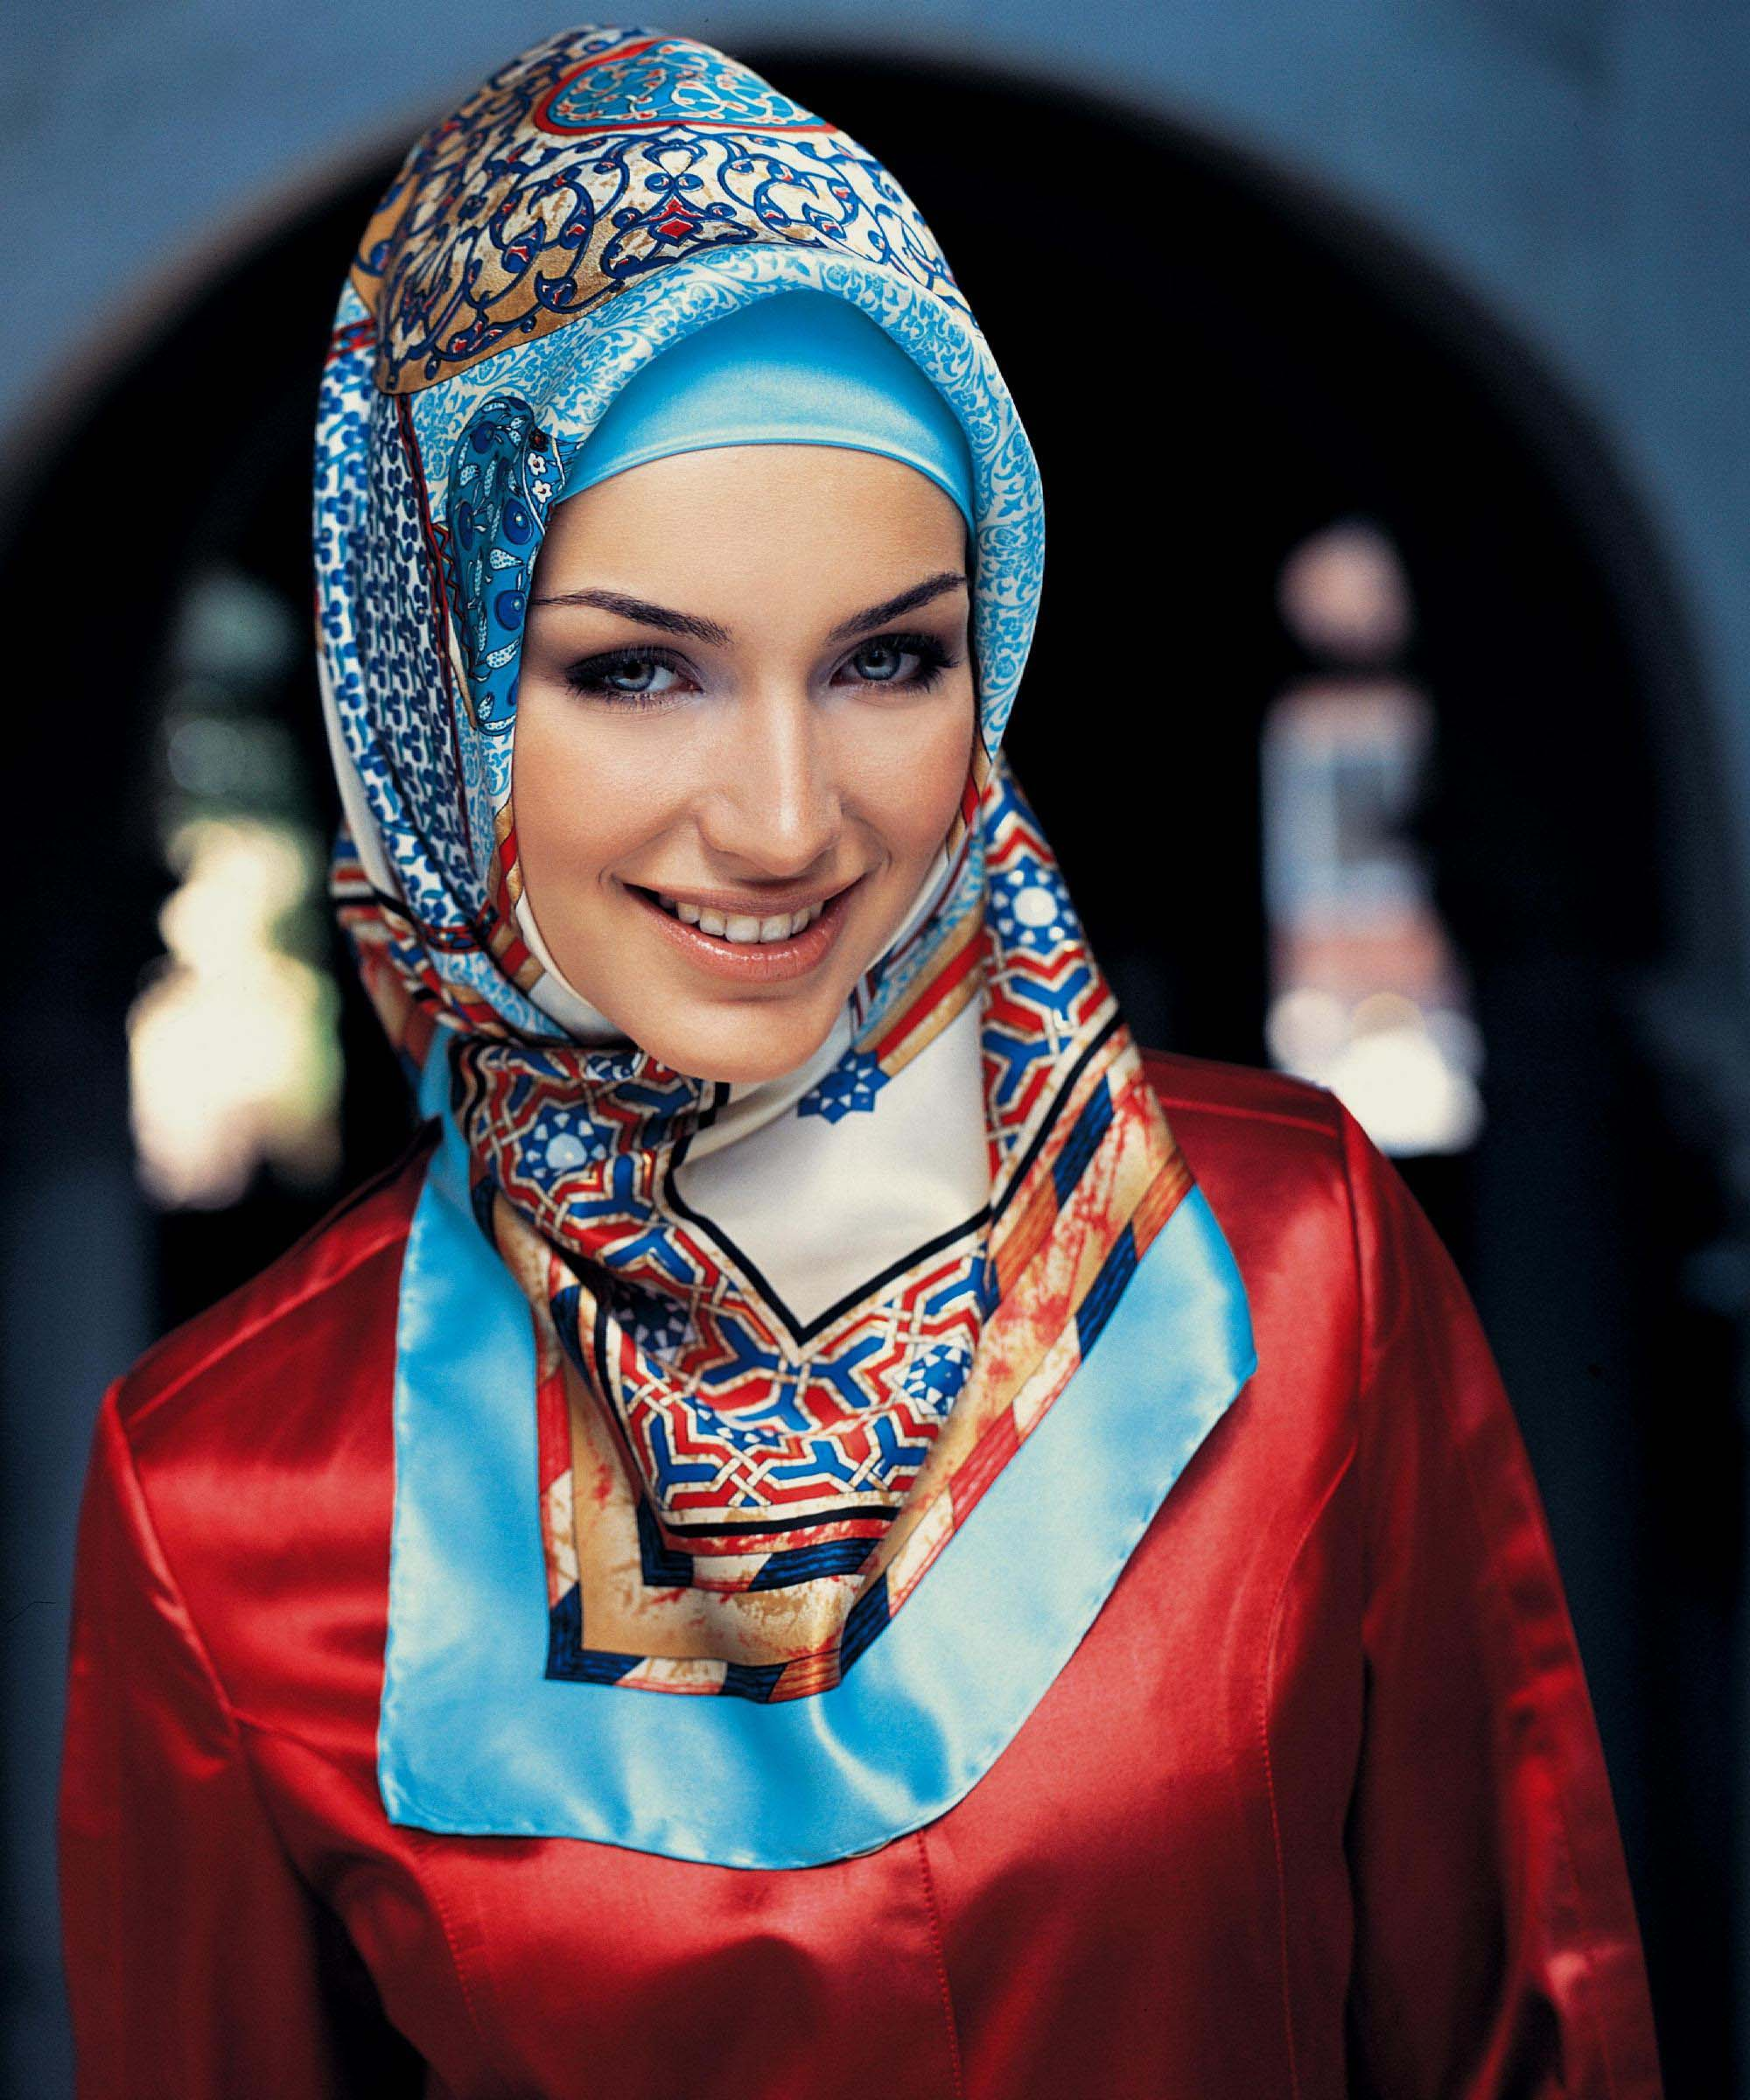 47 SAFETY TIPS FOR MUSLIM WOMEN